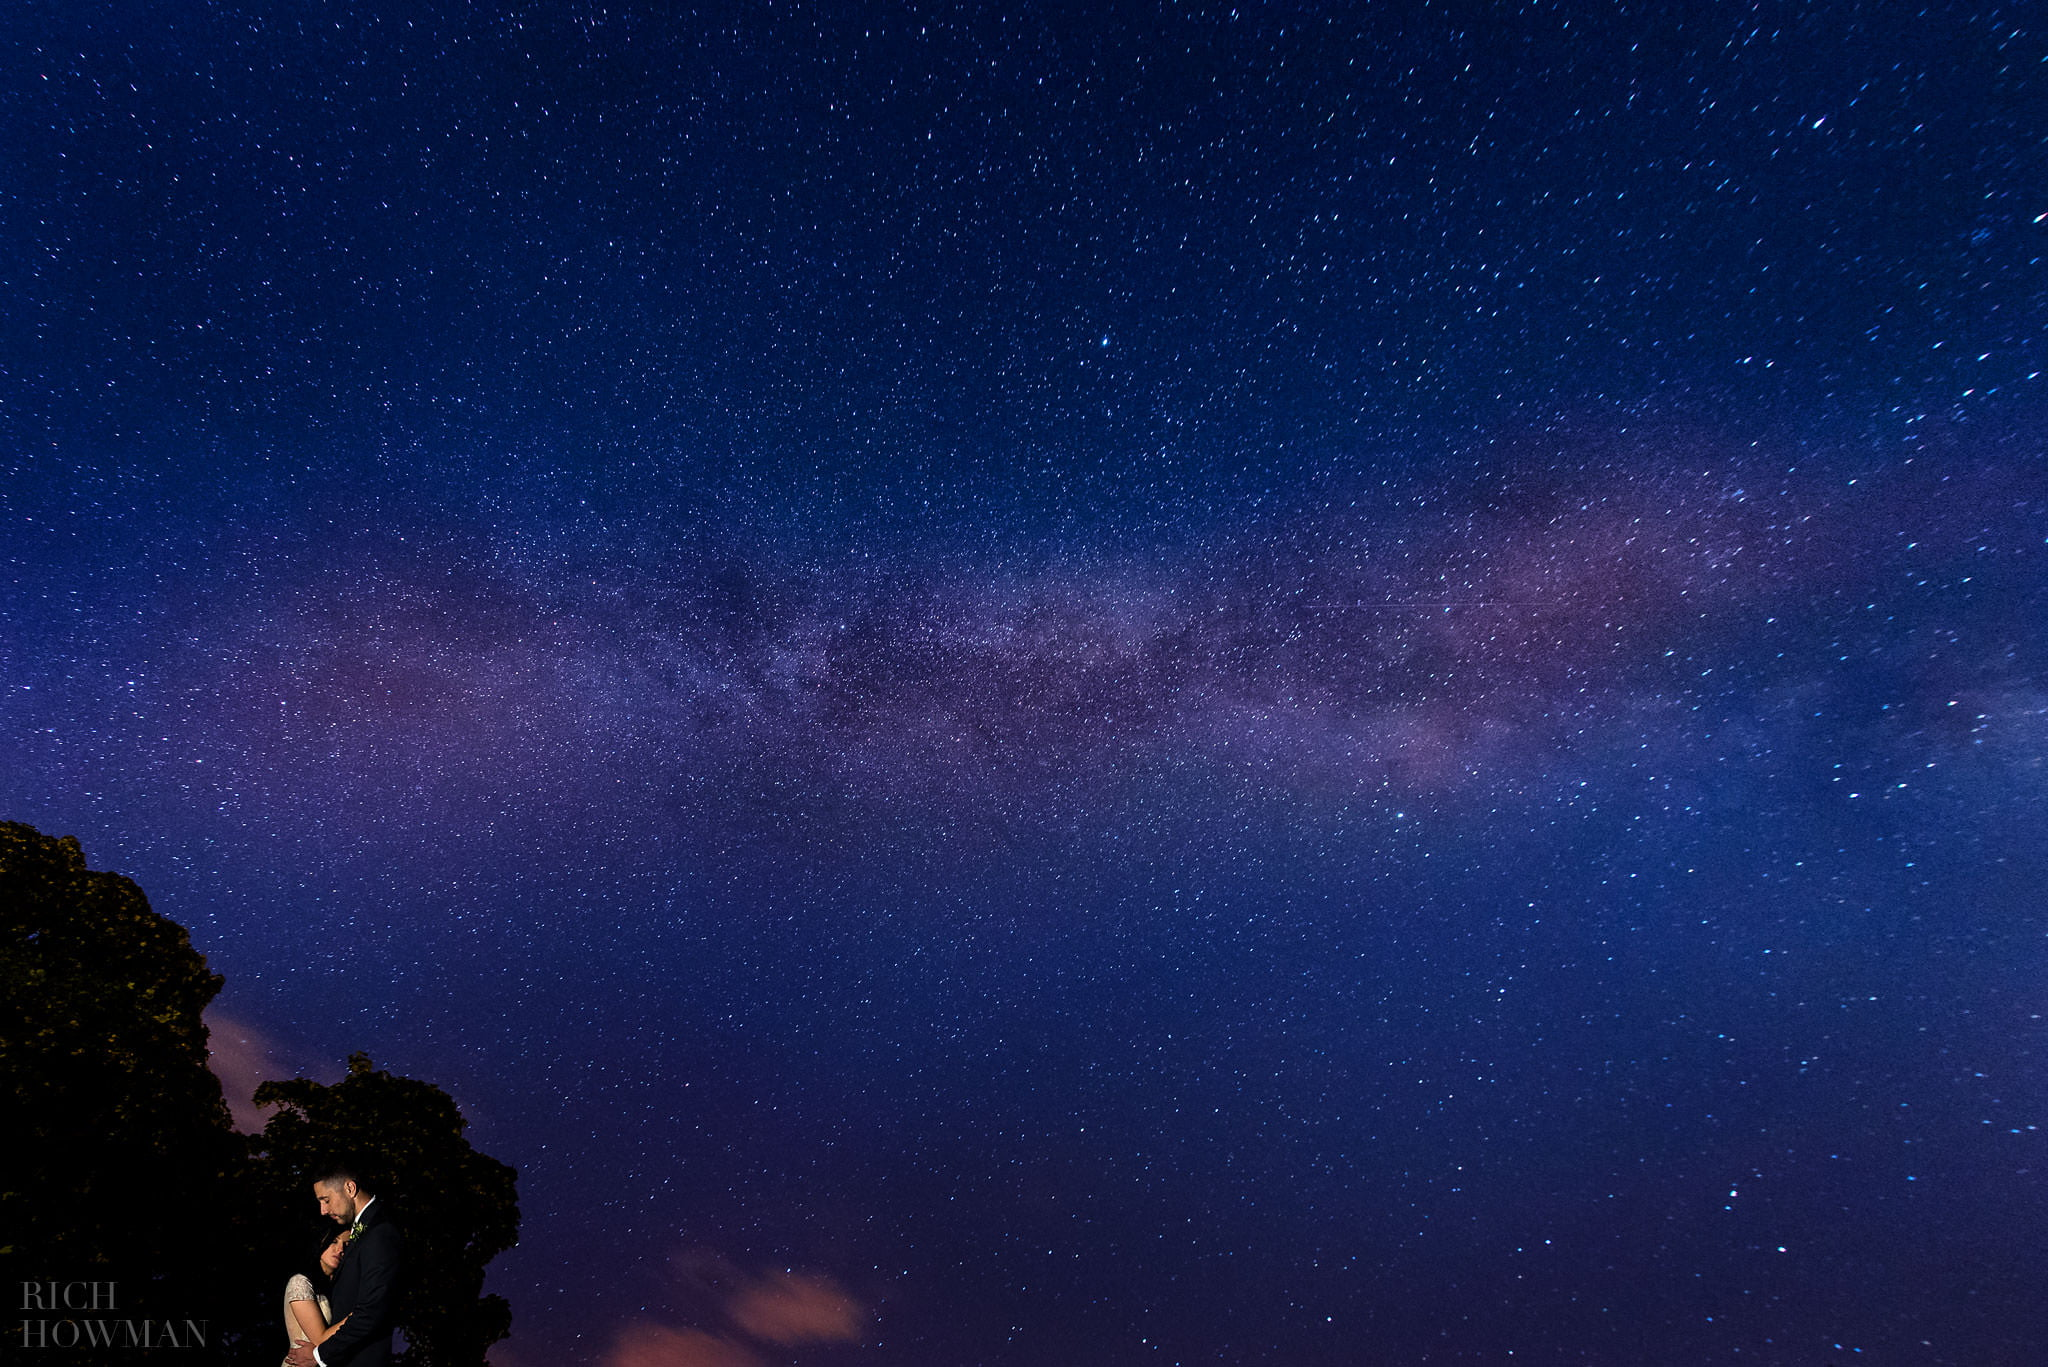 Bride and groom with the Milky Way and Stars Wedding Photo